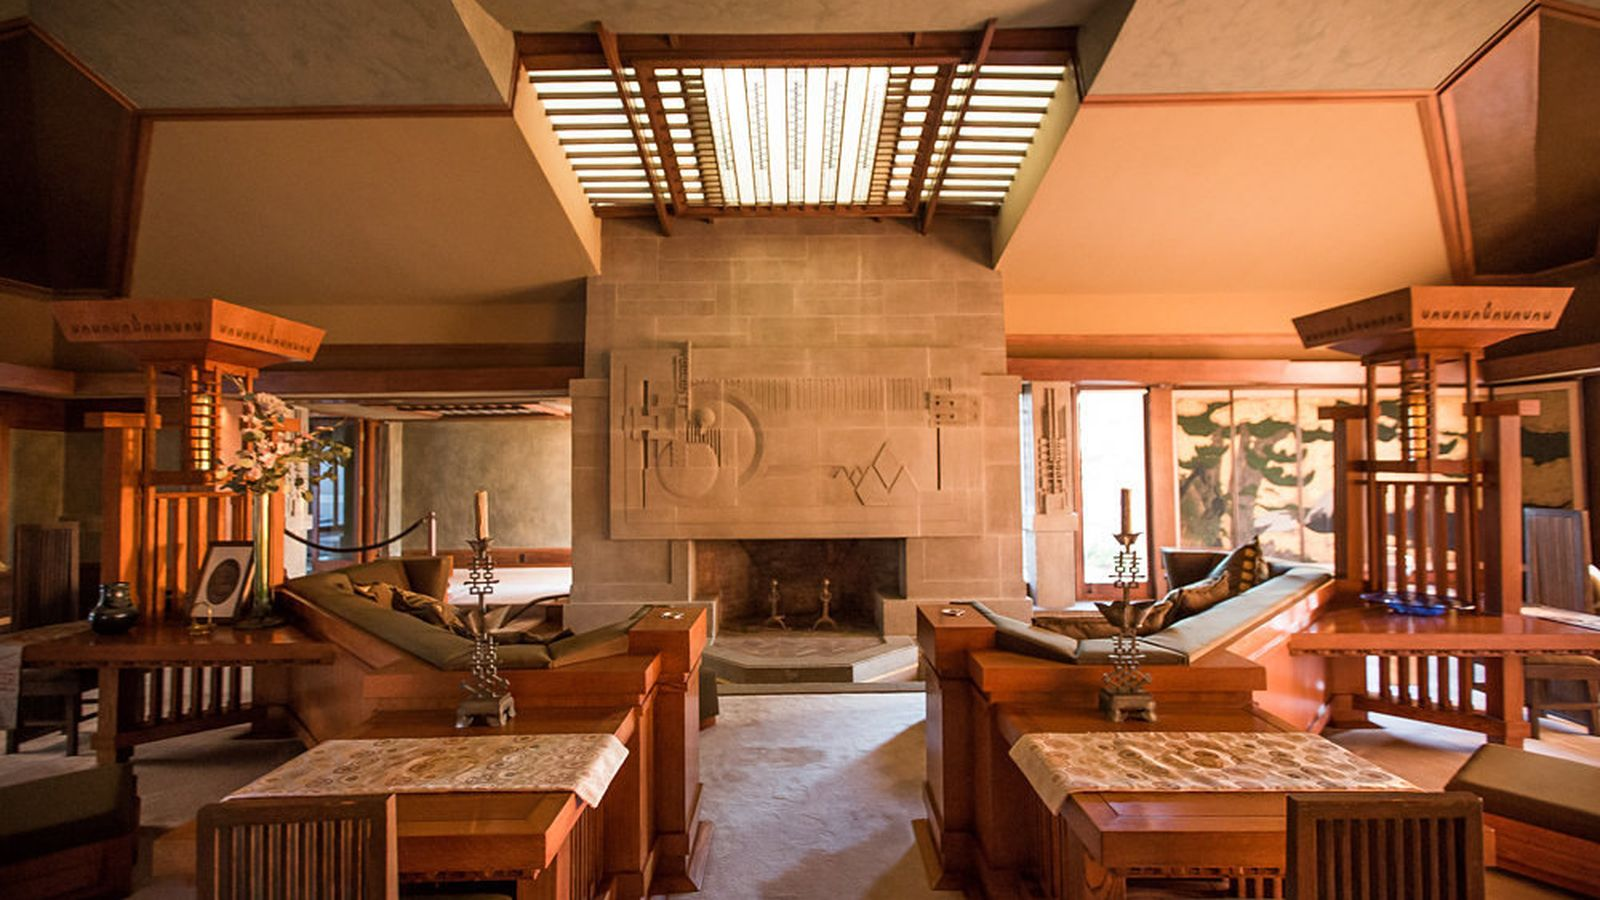 Hollyhock House interior by Frank Lloyd Wright 1920